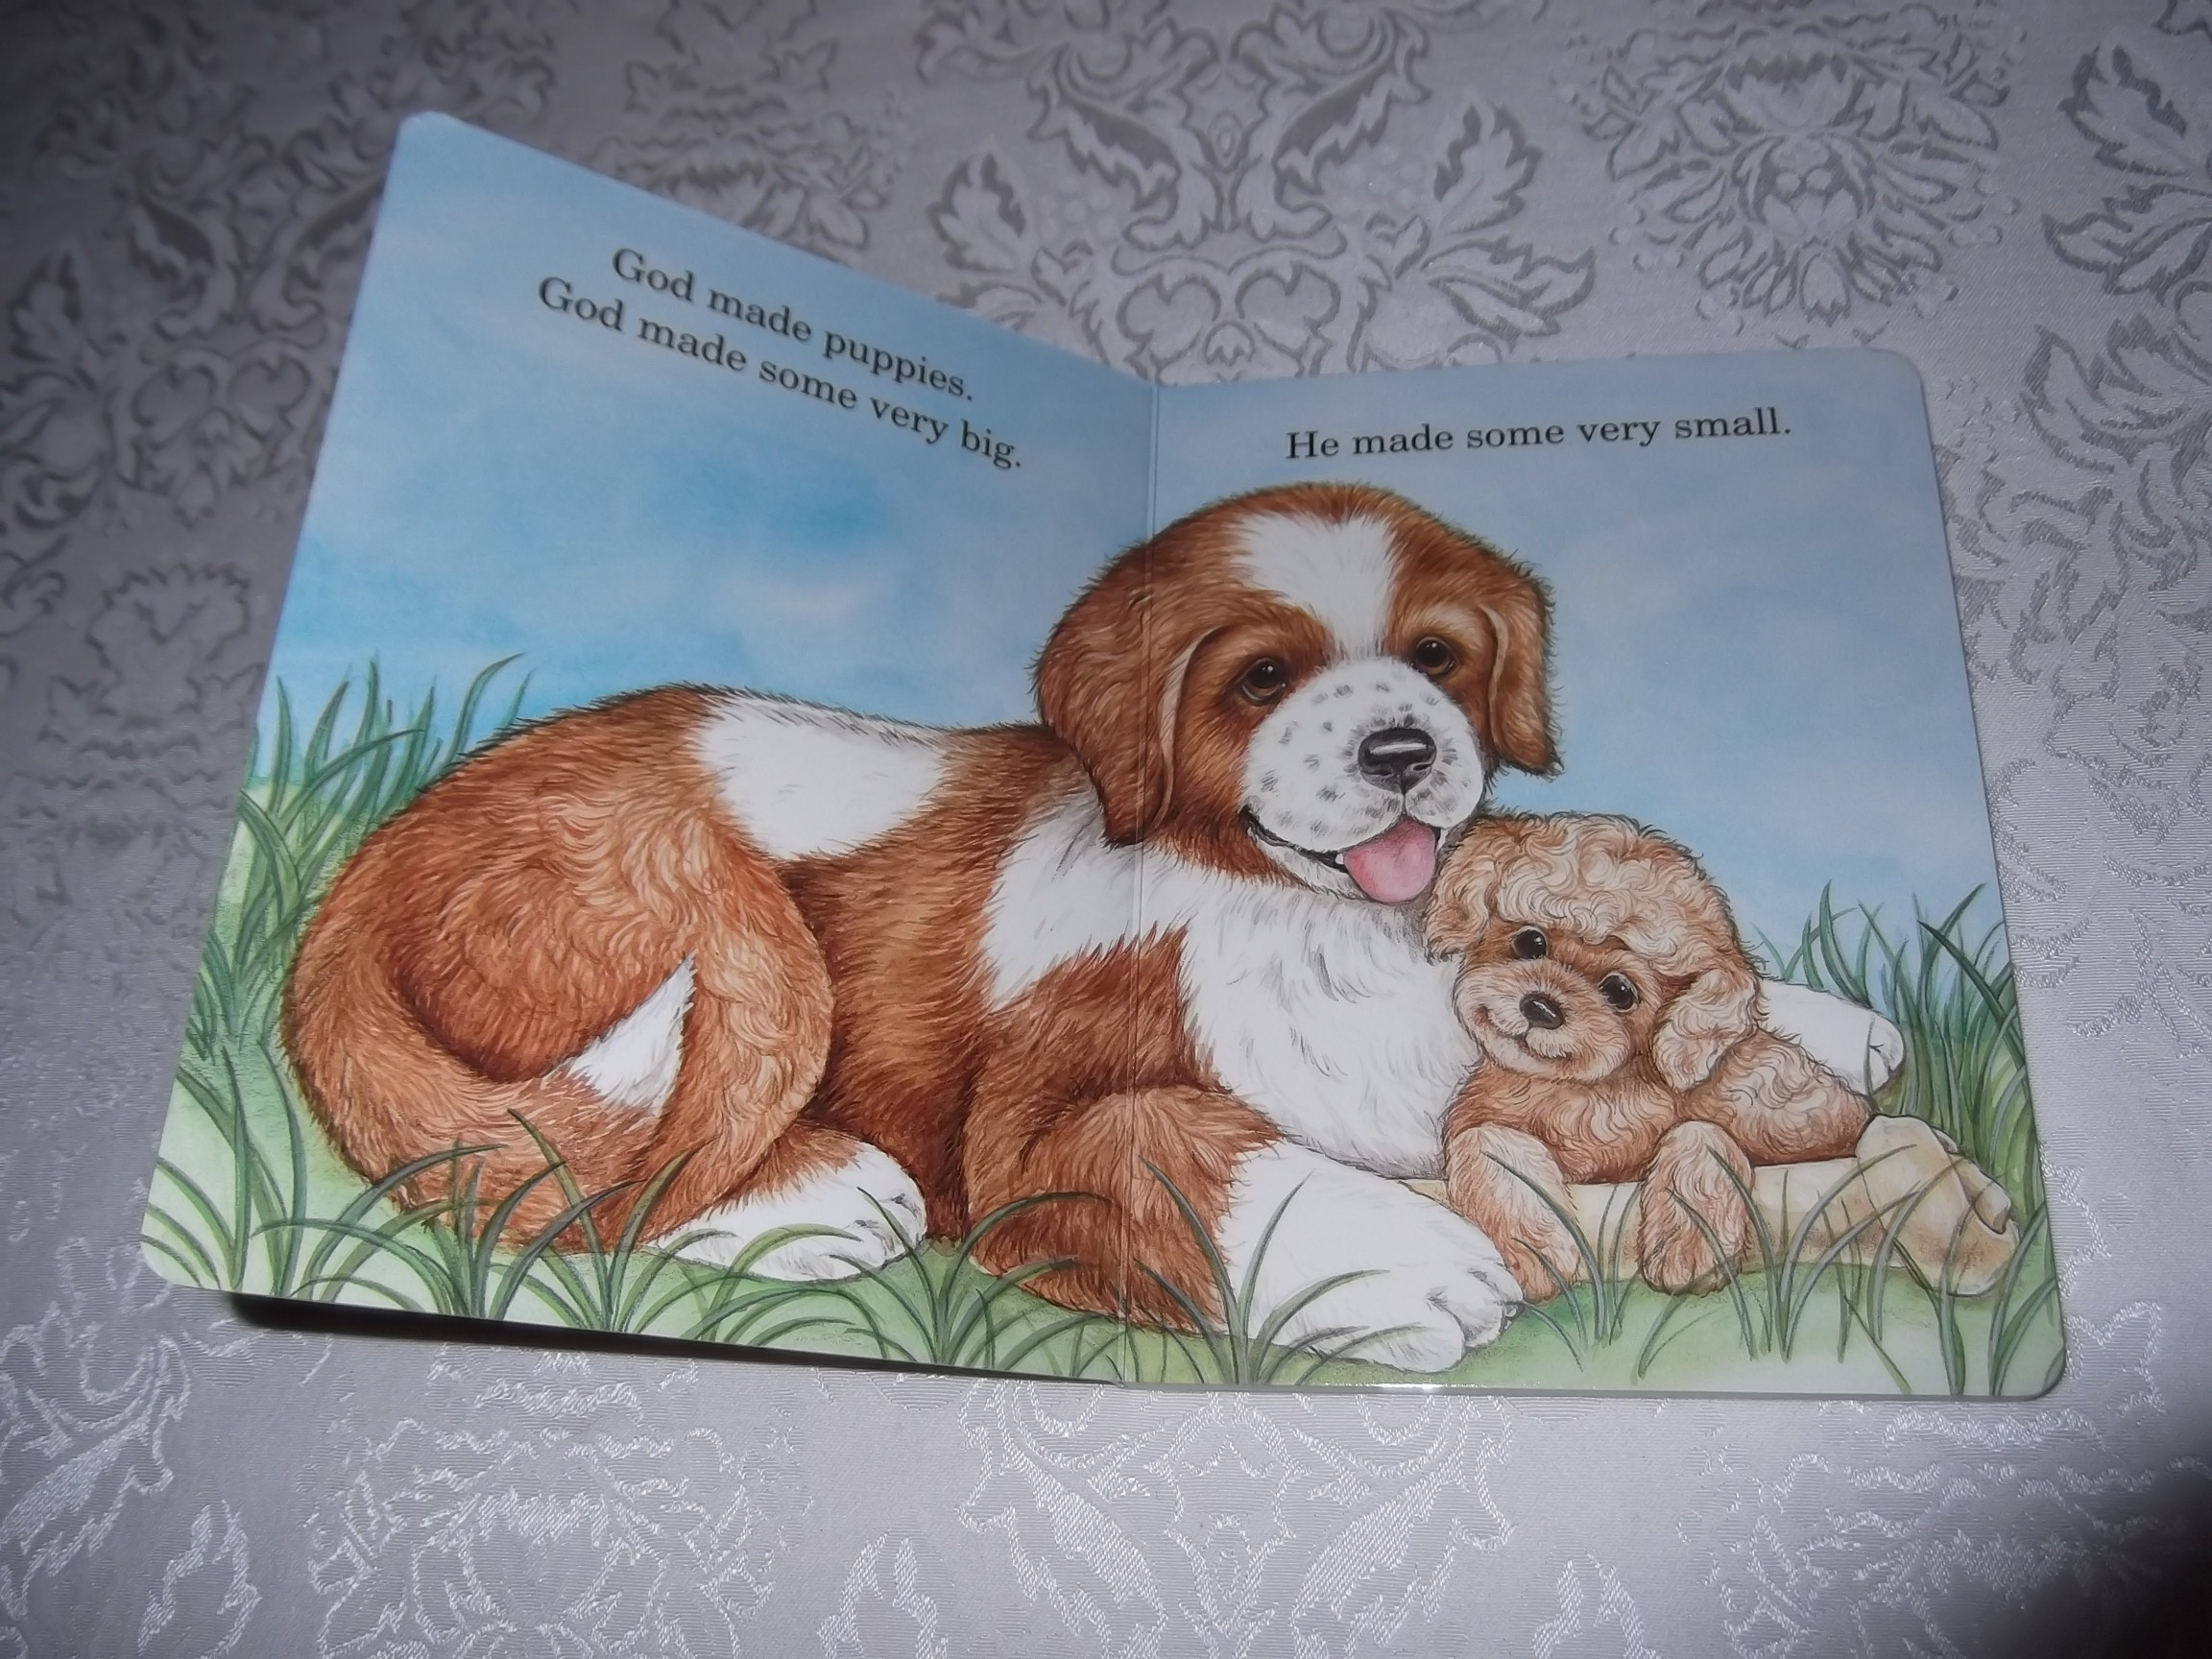 Image 1 of God Made Puppies Marian Bennet Happy Day Brand New Board Book